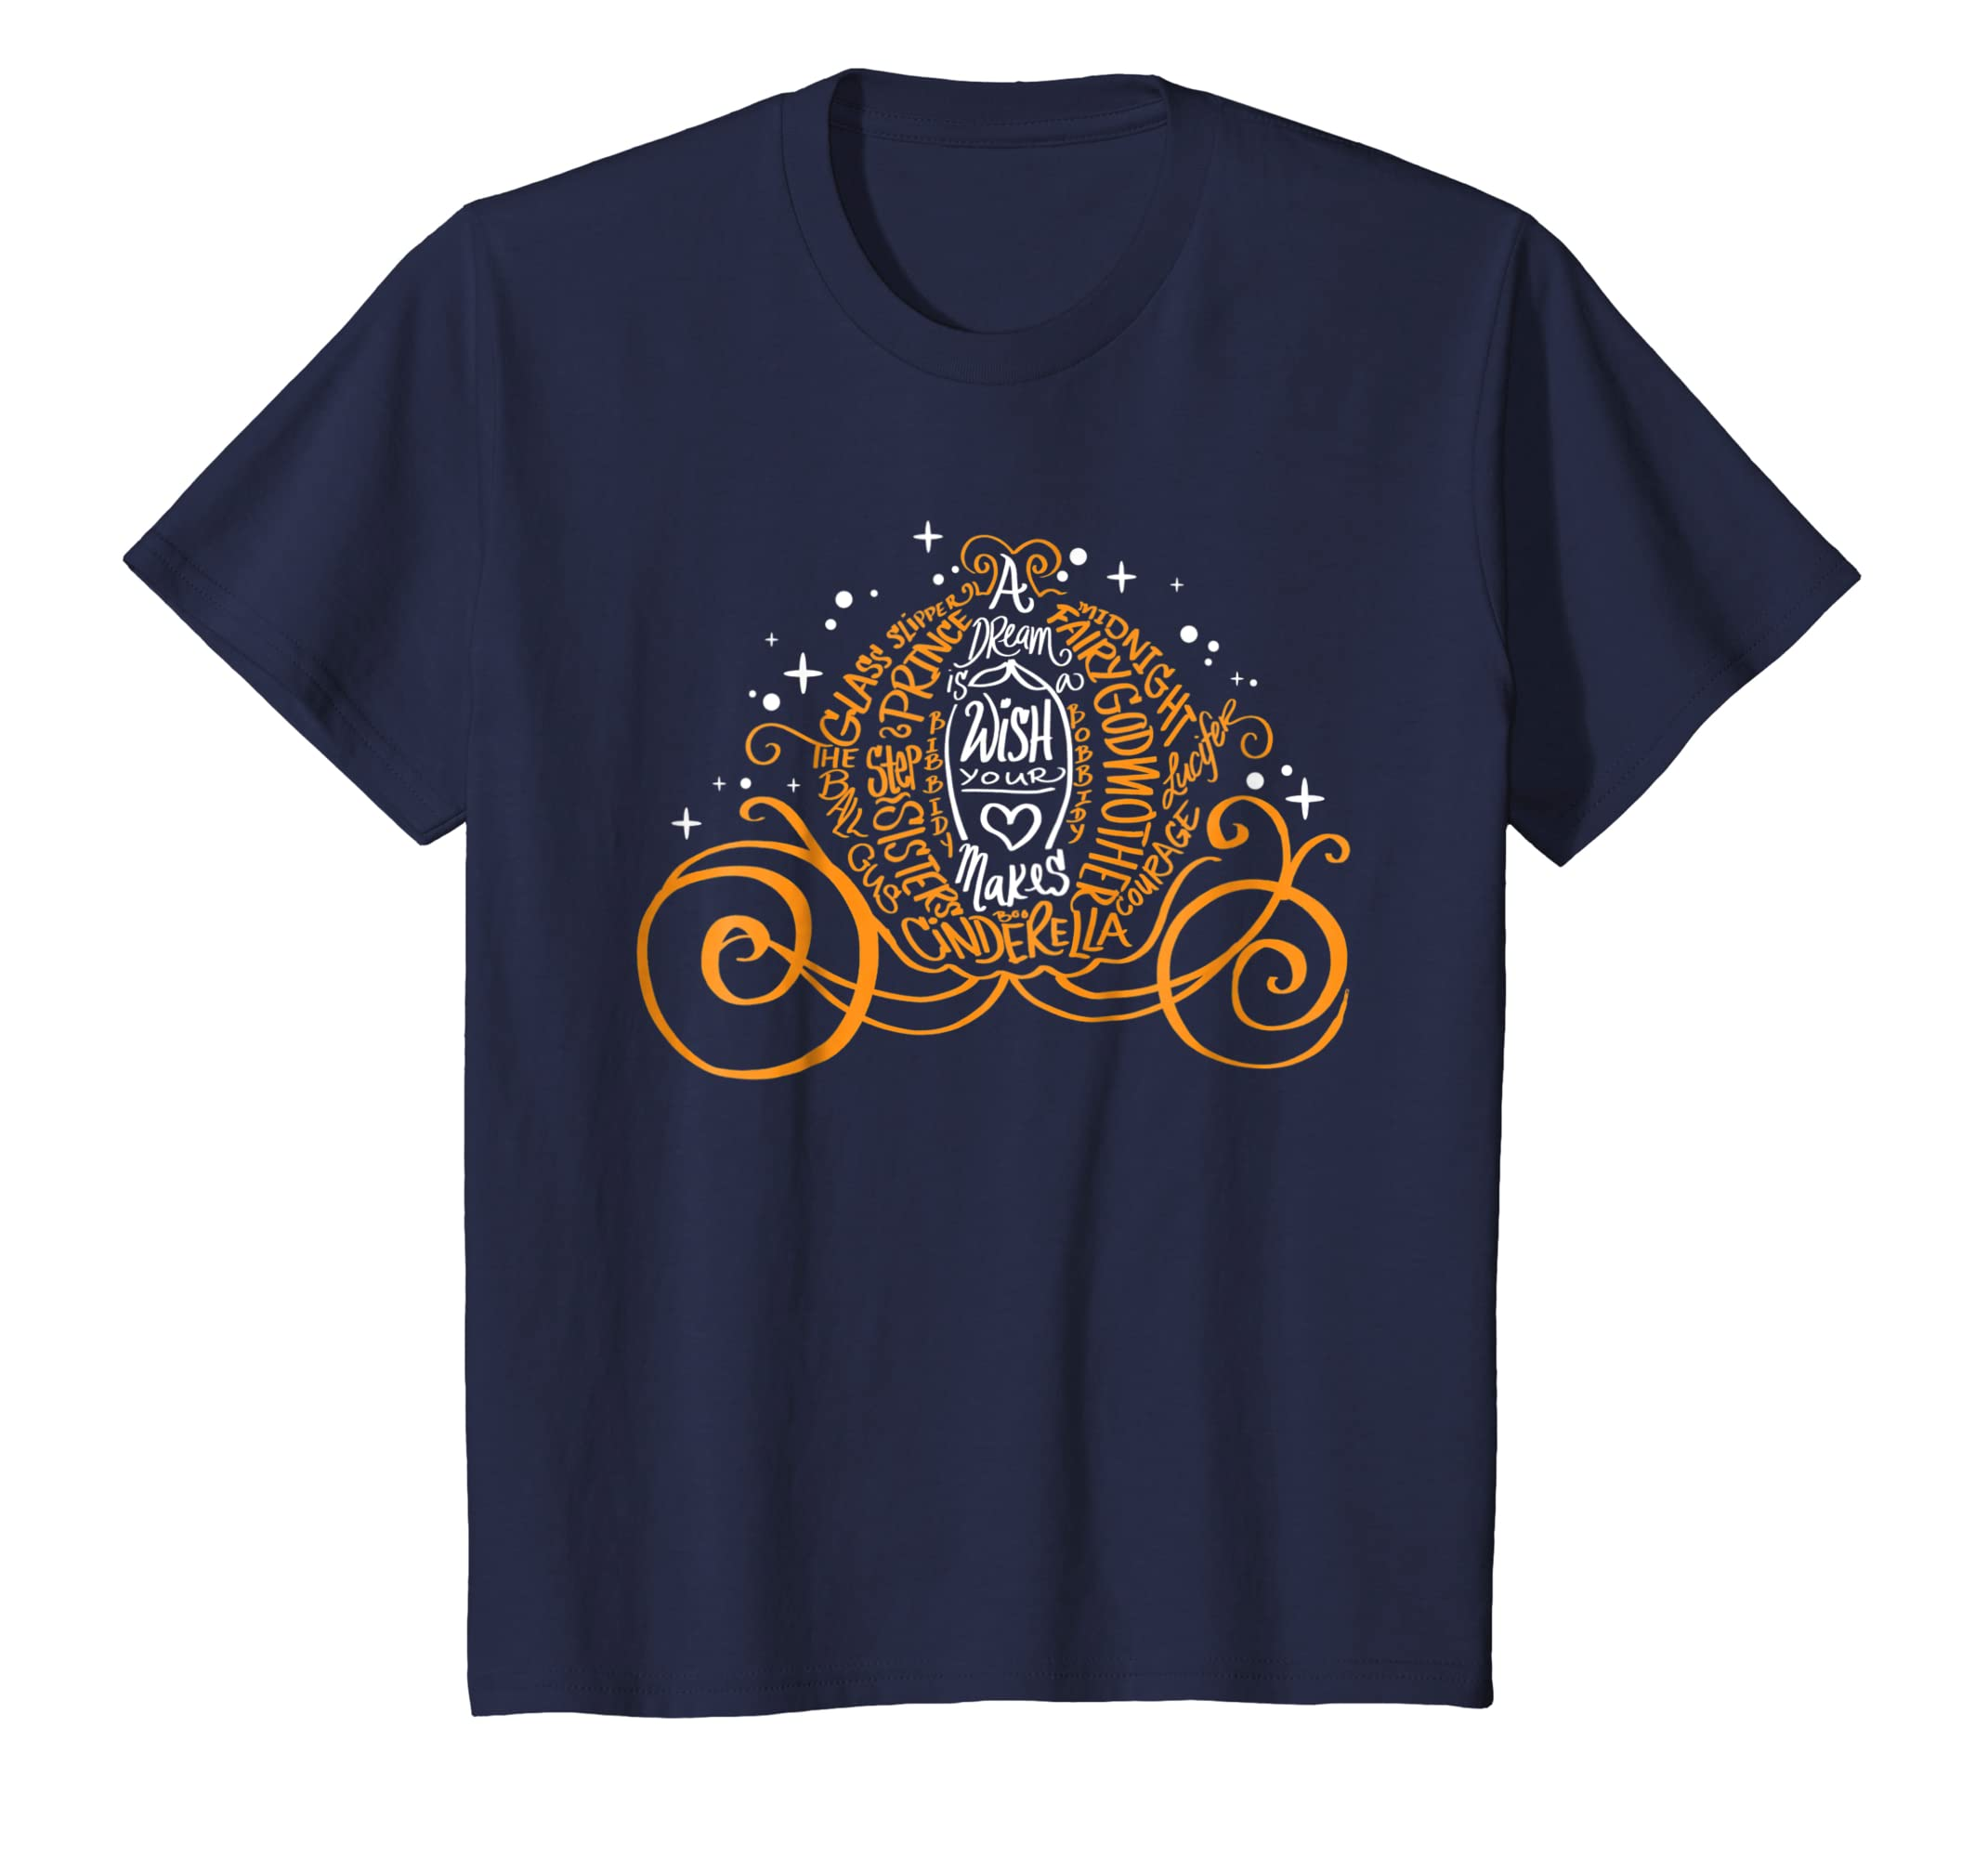 7528b475 Amazon.com: Disney Cinderella Halloween Pumpkin Coach Graphic T-Shirt:  Clothing